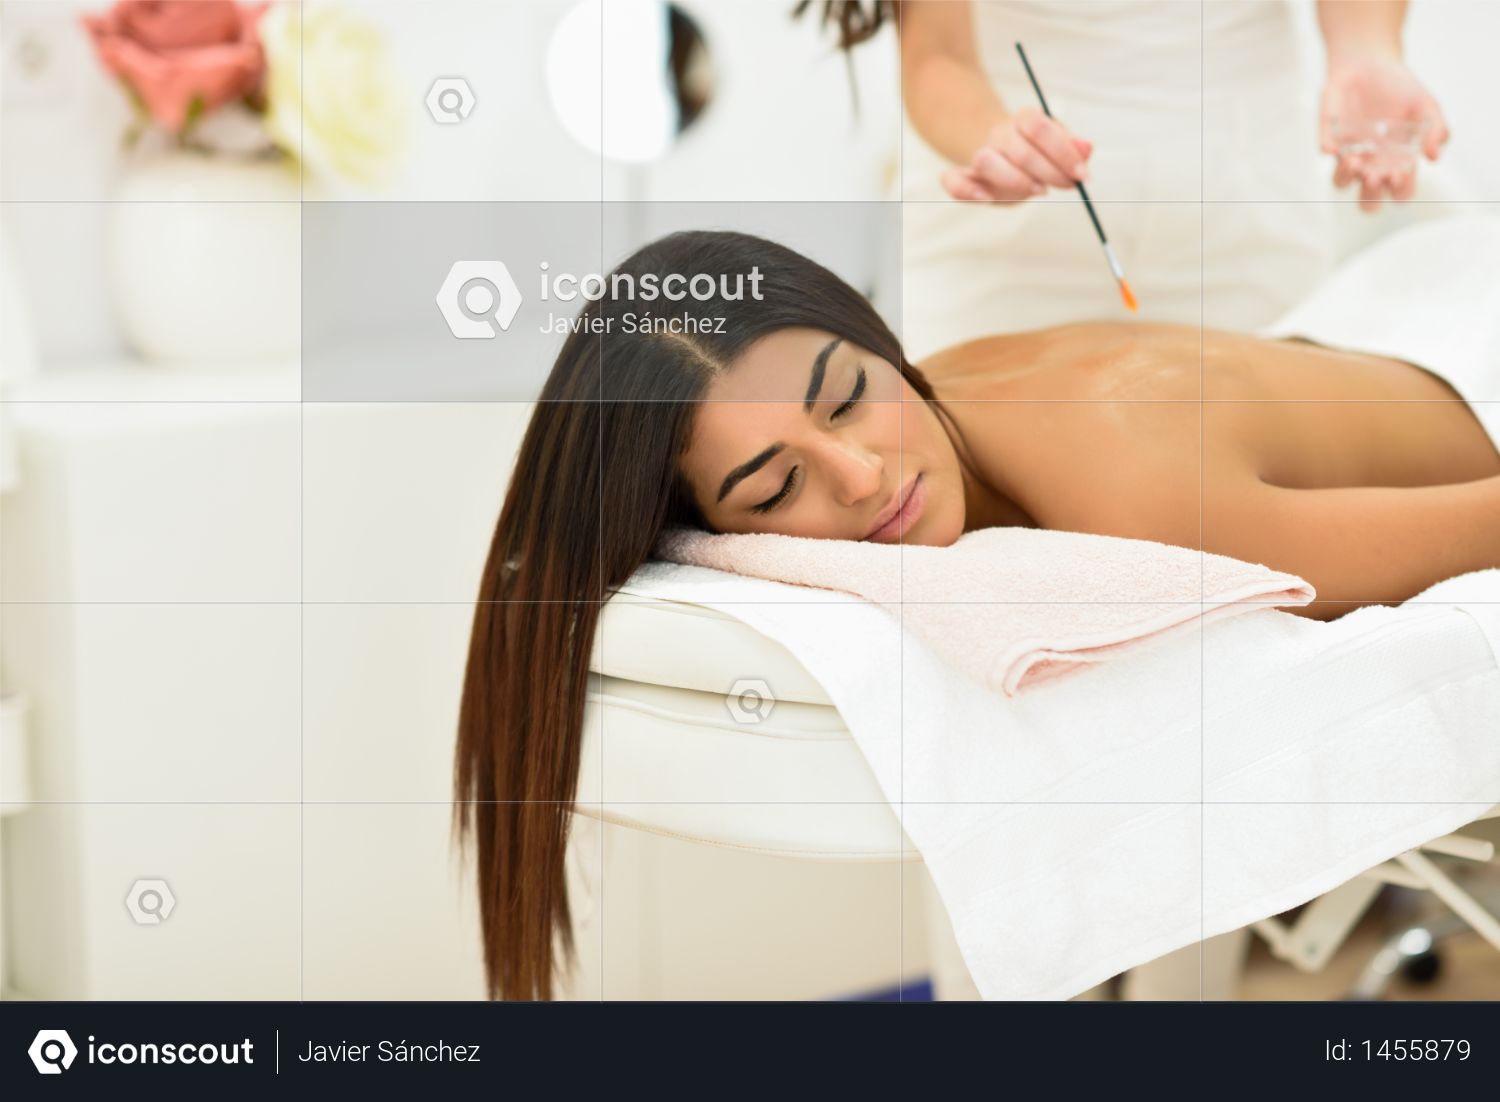 Arab woman in wellness beauty spa having aroma therapy massage with essential oil, looking relaxed Beauty and Aesthetic concepts. Photo